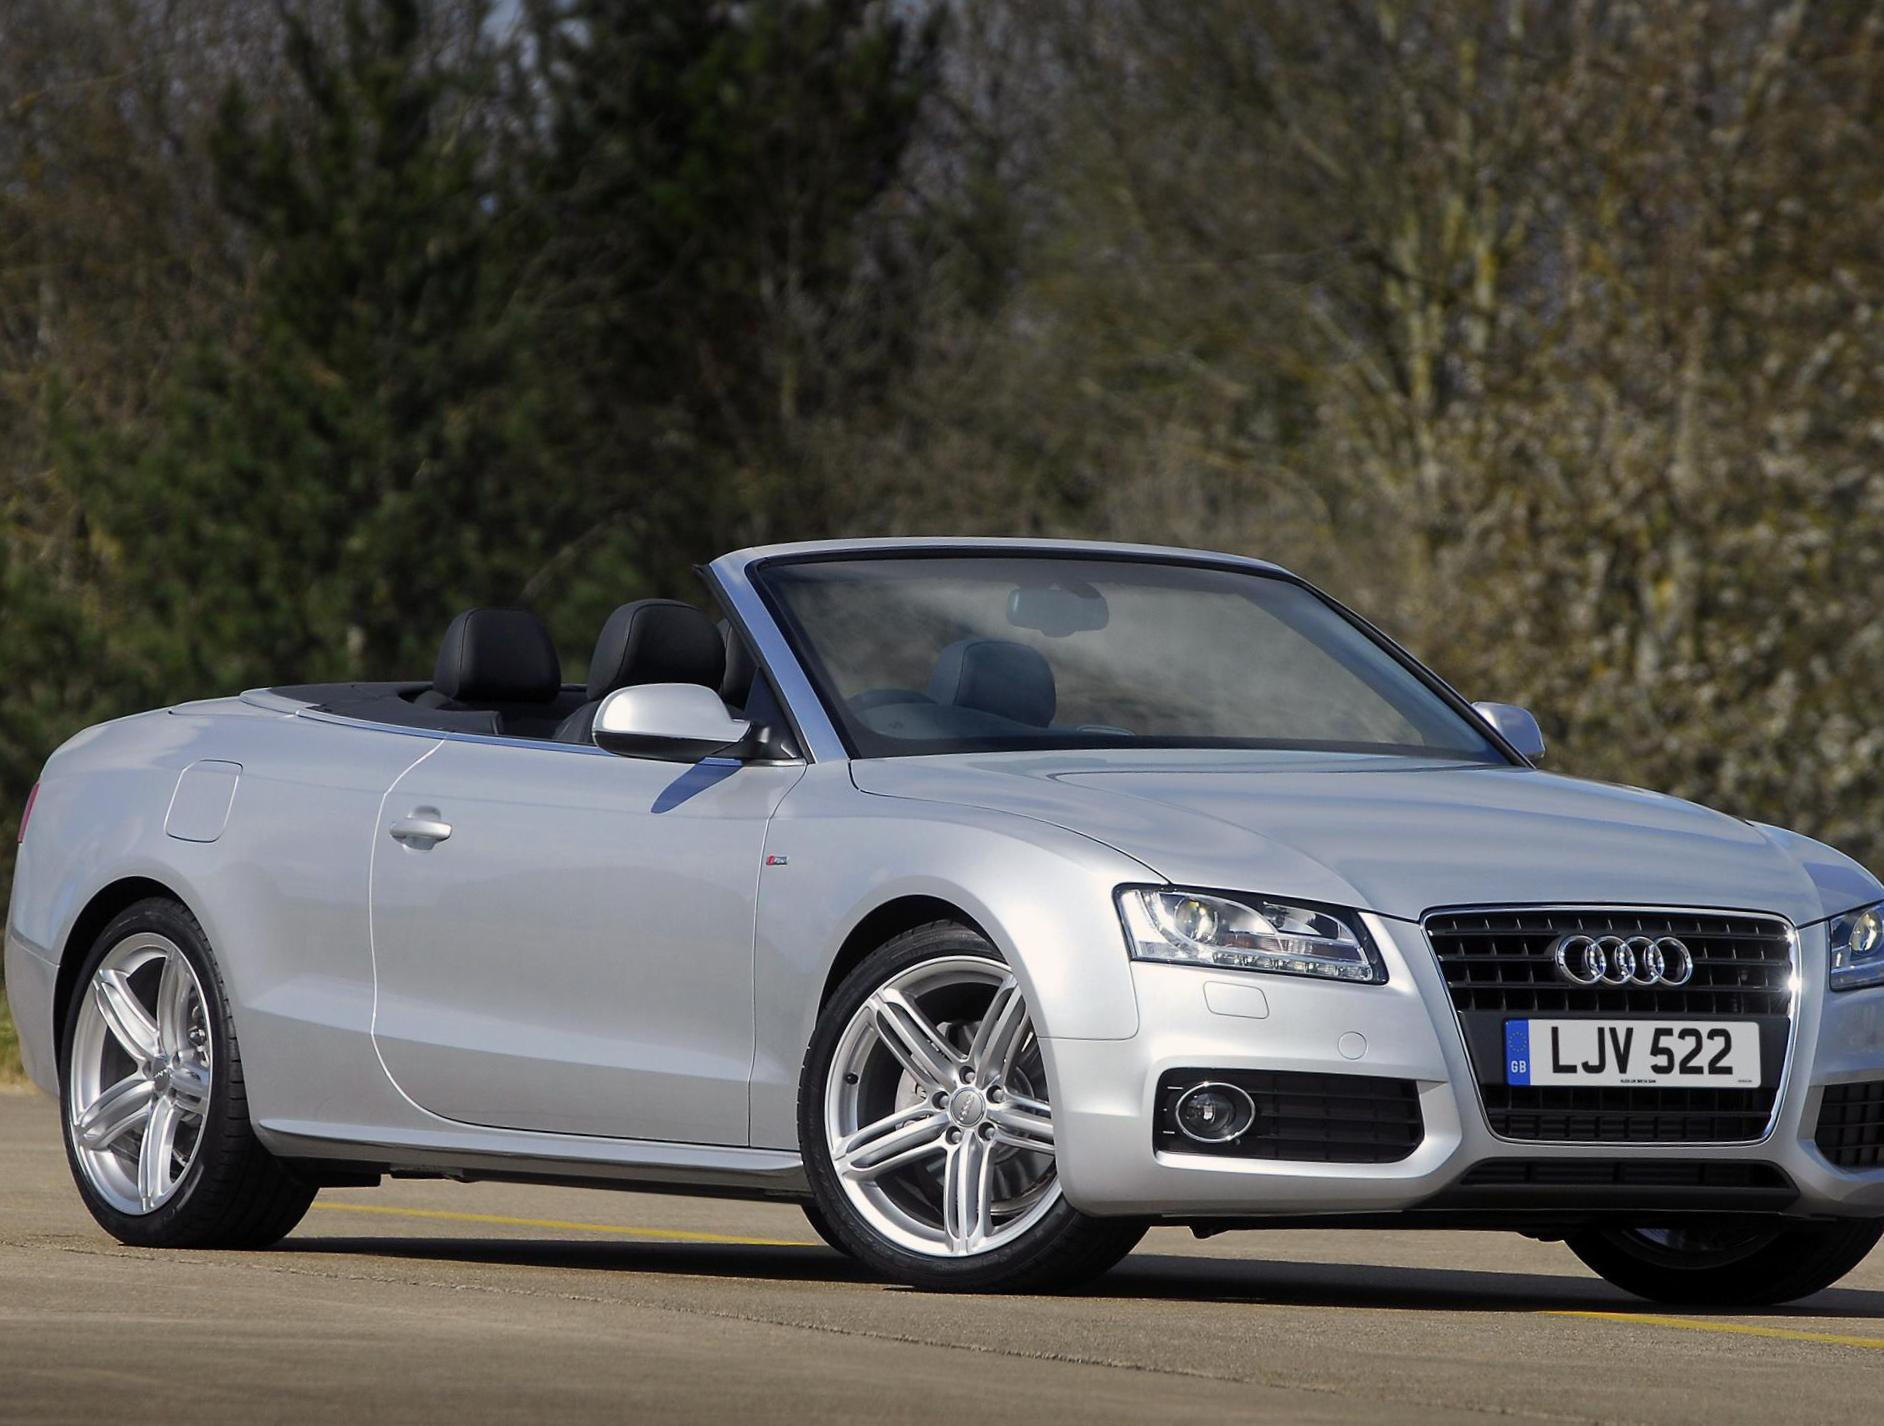 Audi A5 Cabriolet approved 2006